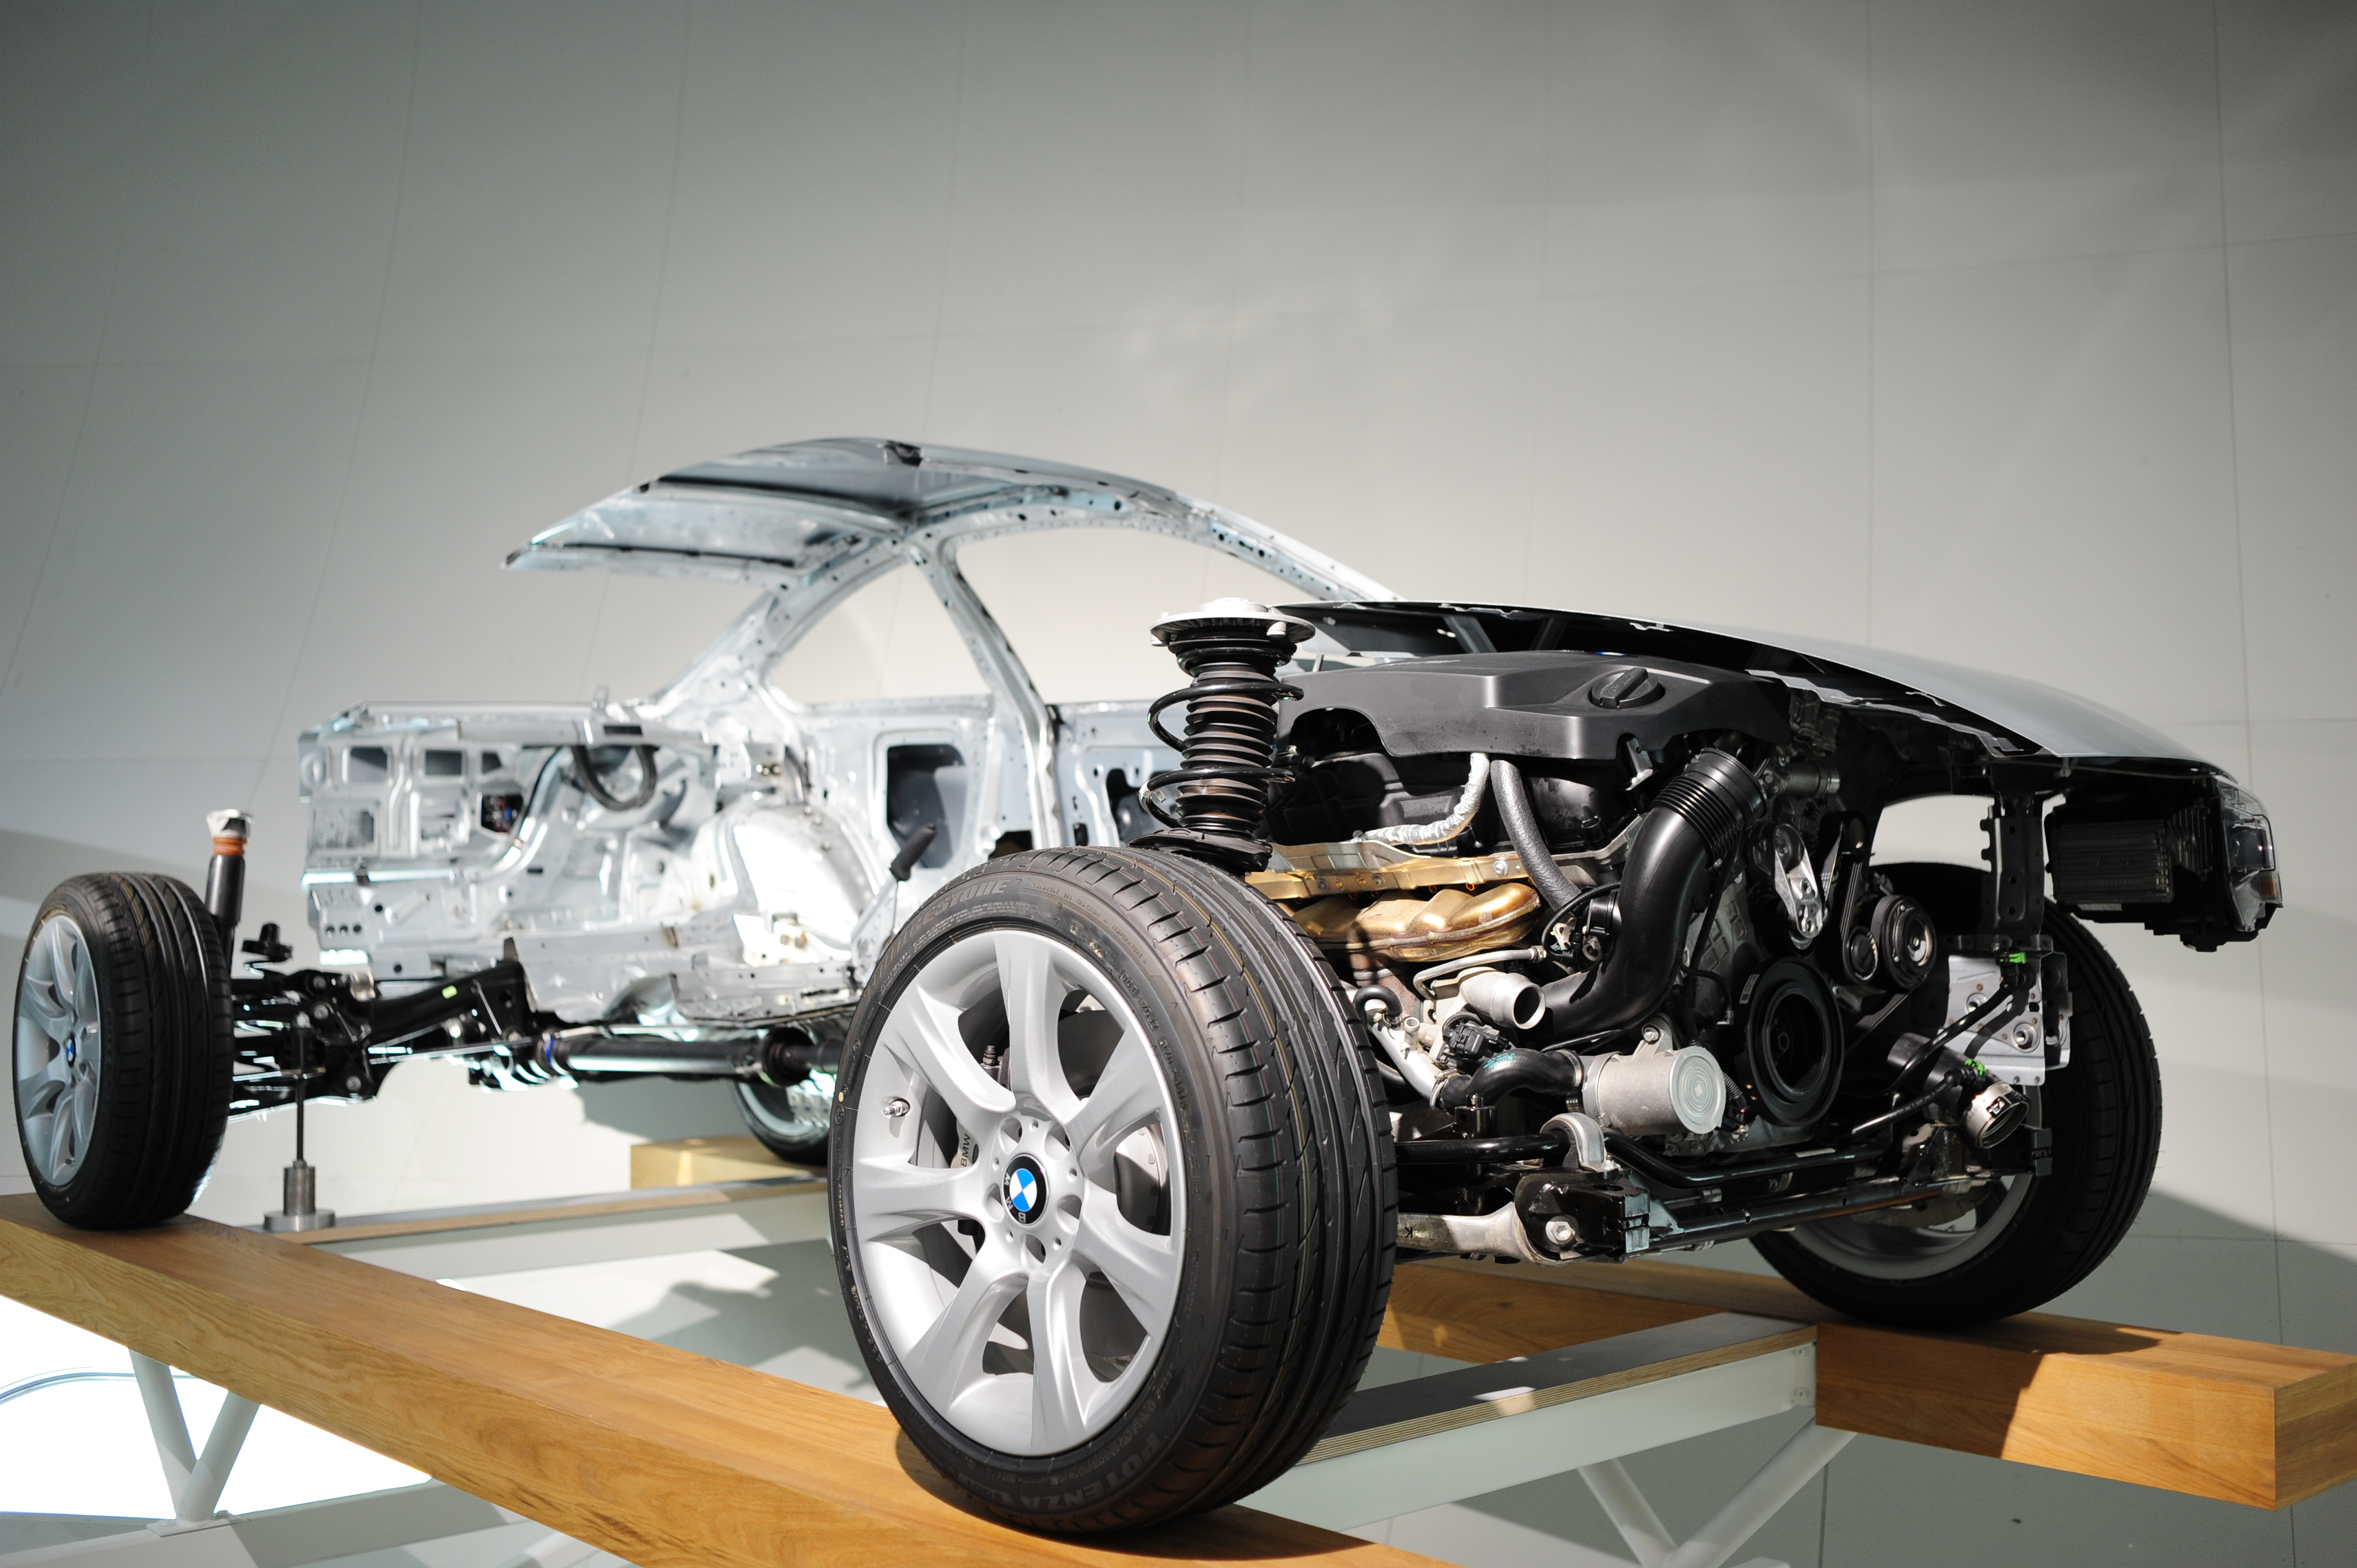 In the BMW museum